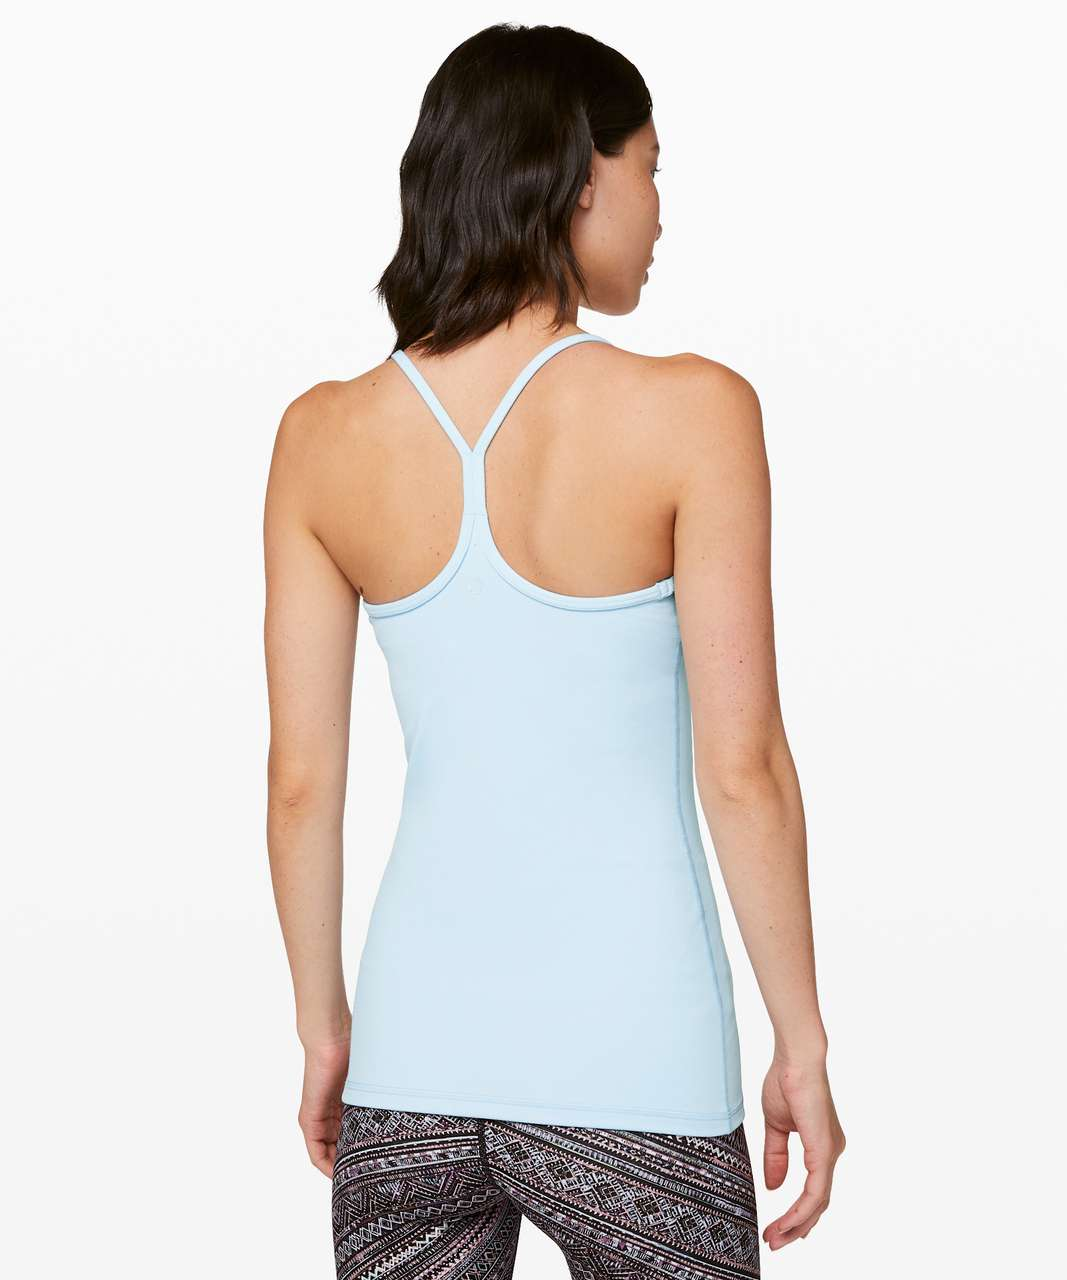 Lululemon Power Y Tank *Luon - Breezy